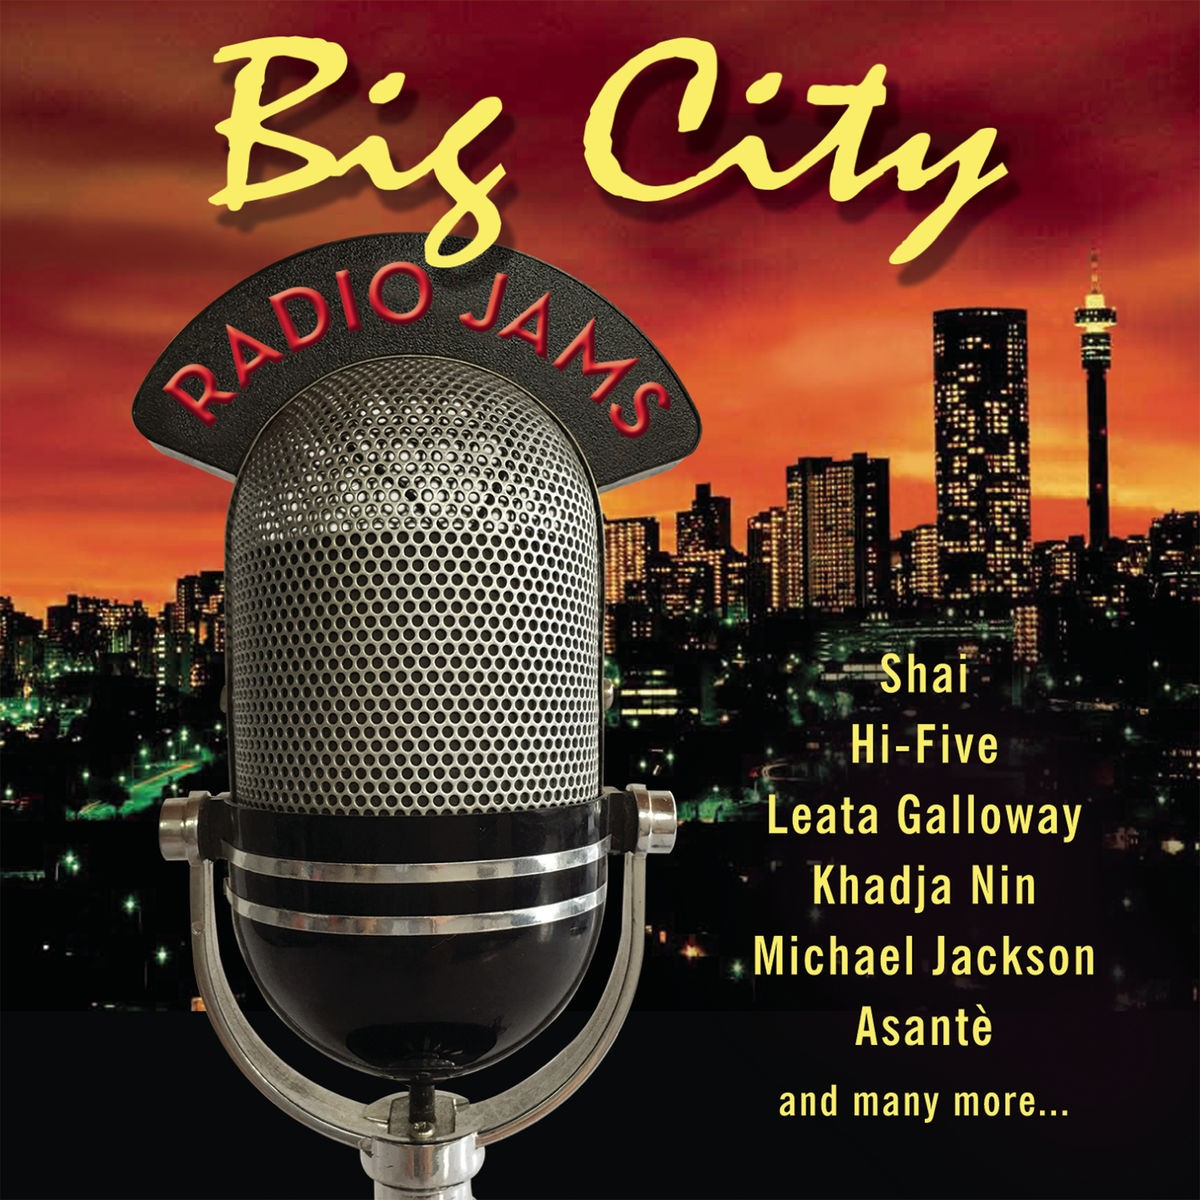 Big City Radio Jams CD - CDBSP3350